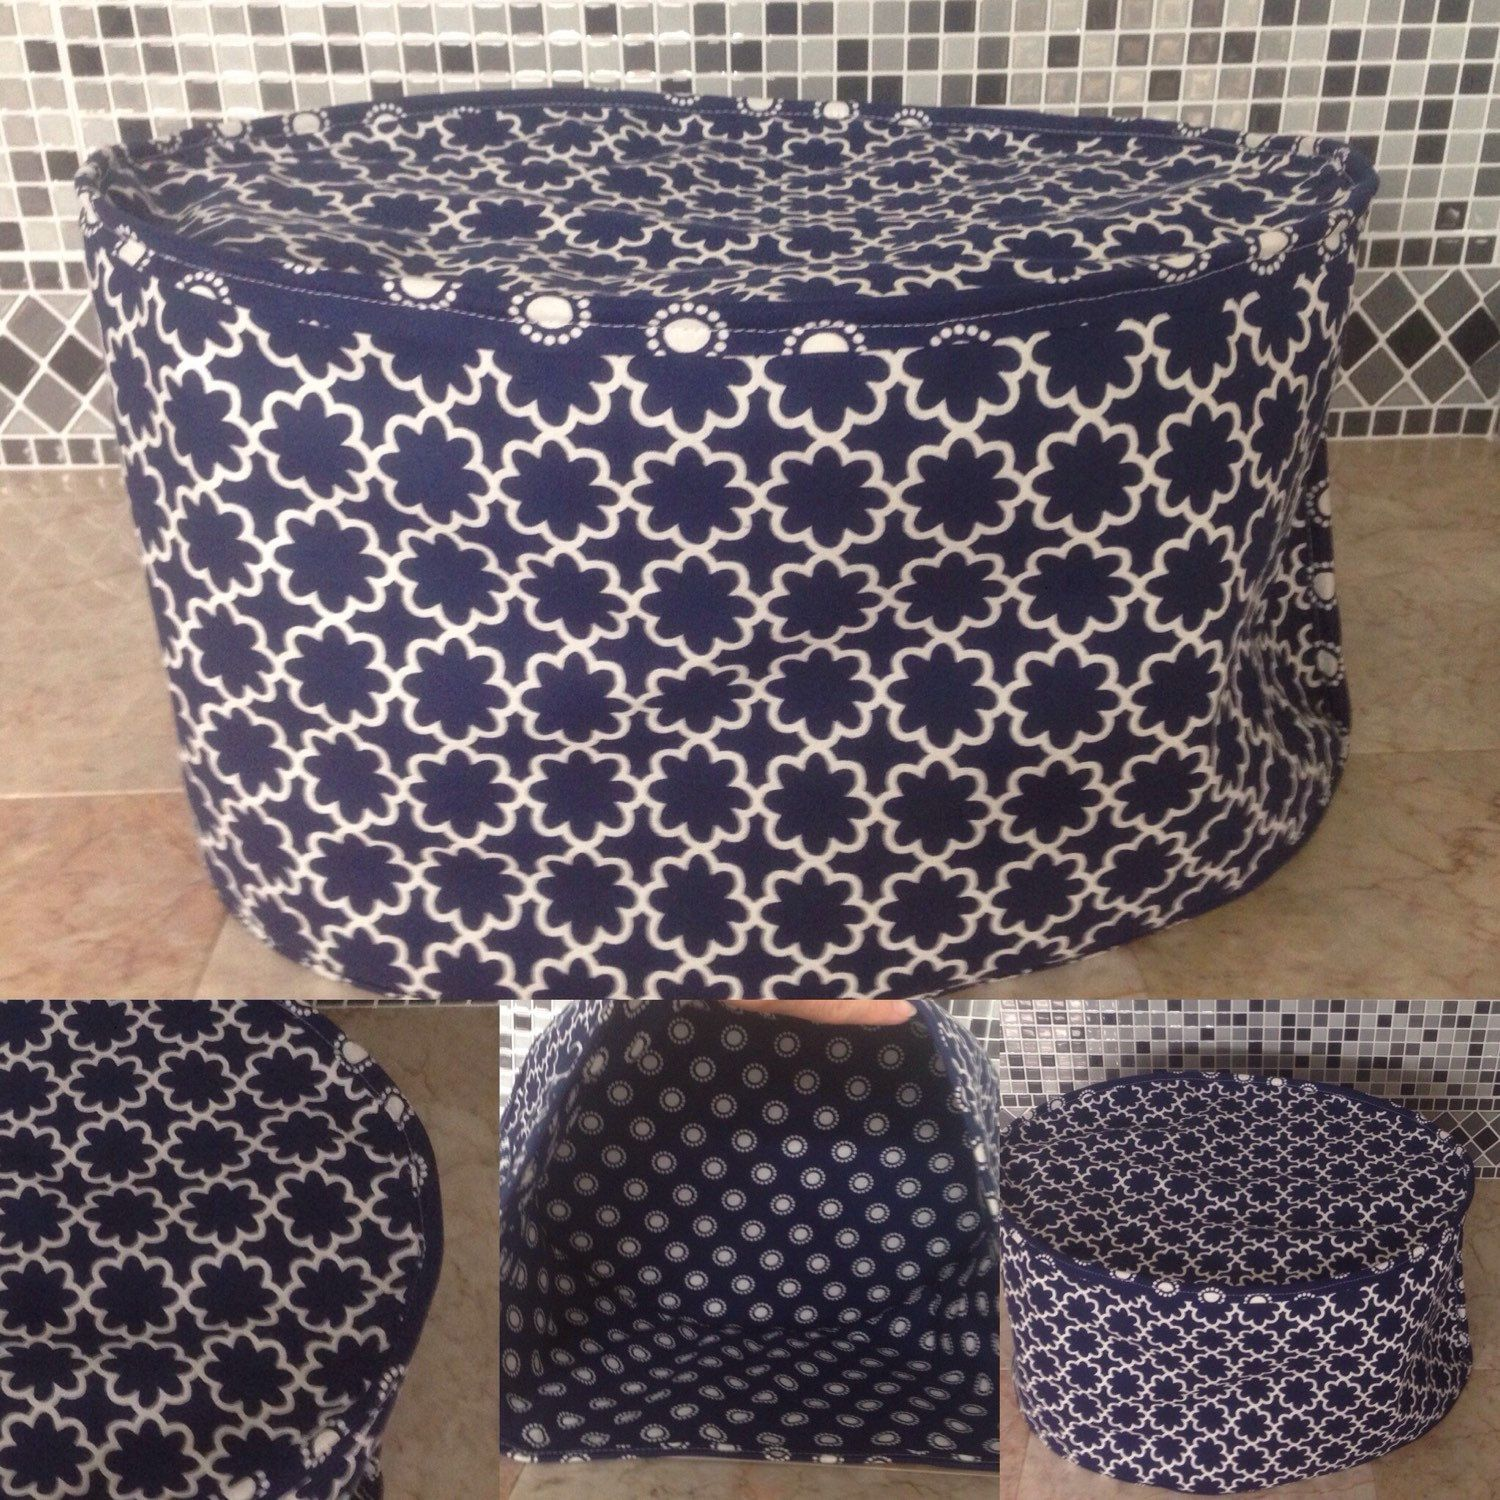 This Is An Oval Crock Pot Cover In Navy Blue And White Pattern Print Appliance Covers Mom Sewing Small Appliance Covers